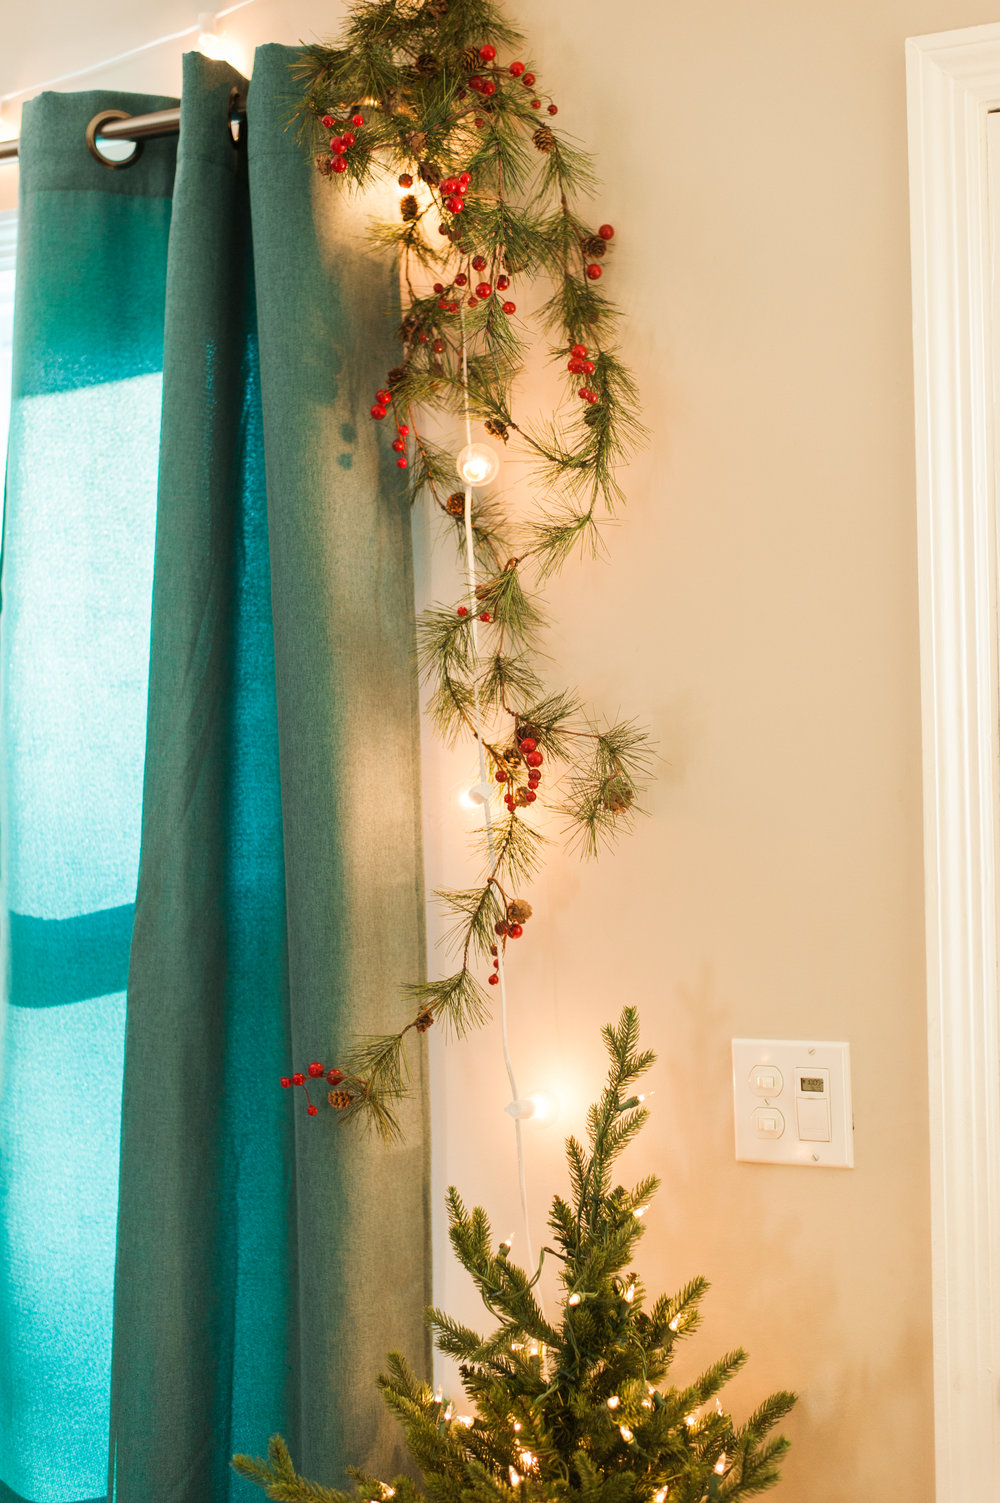 Christmas Home Tour Blog 2017-7.JPG